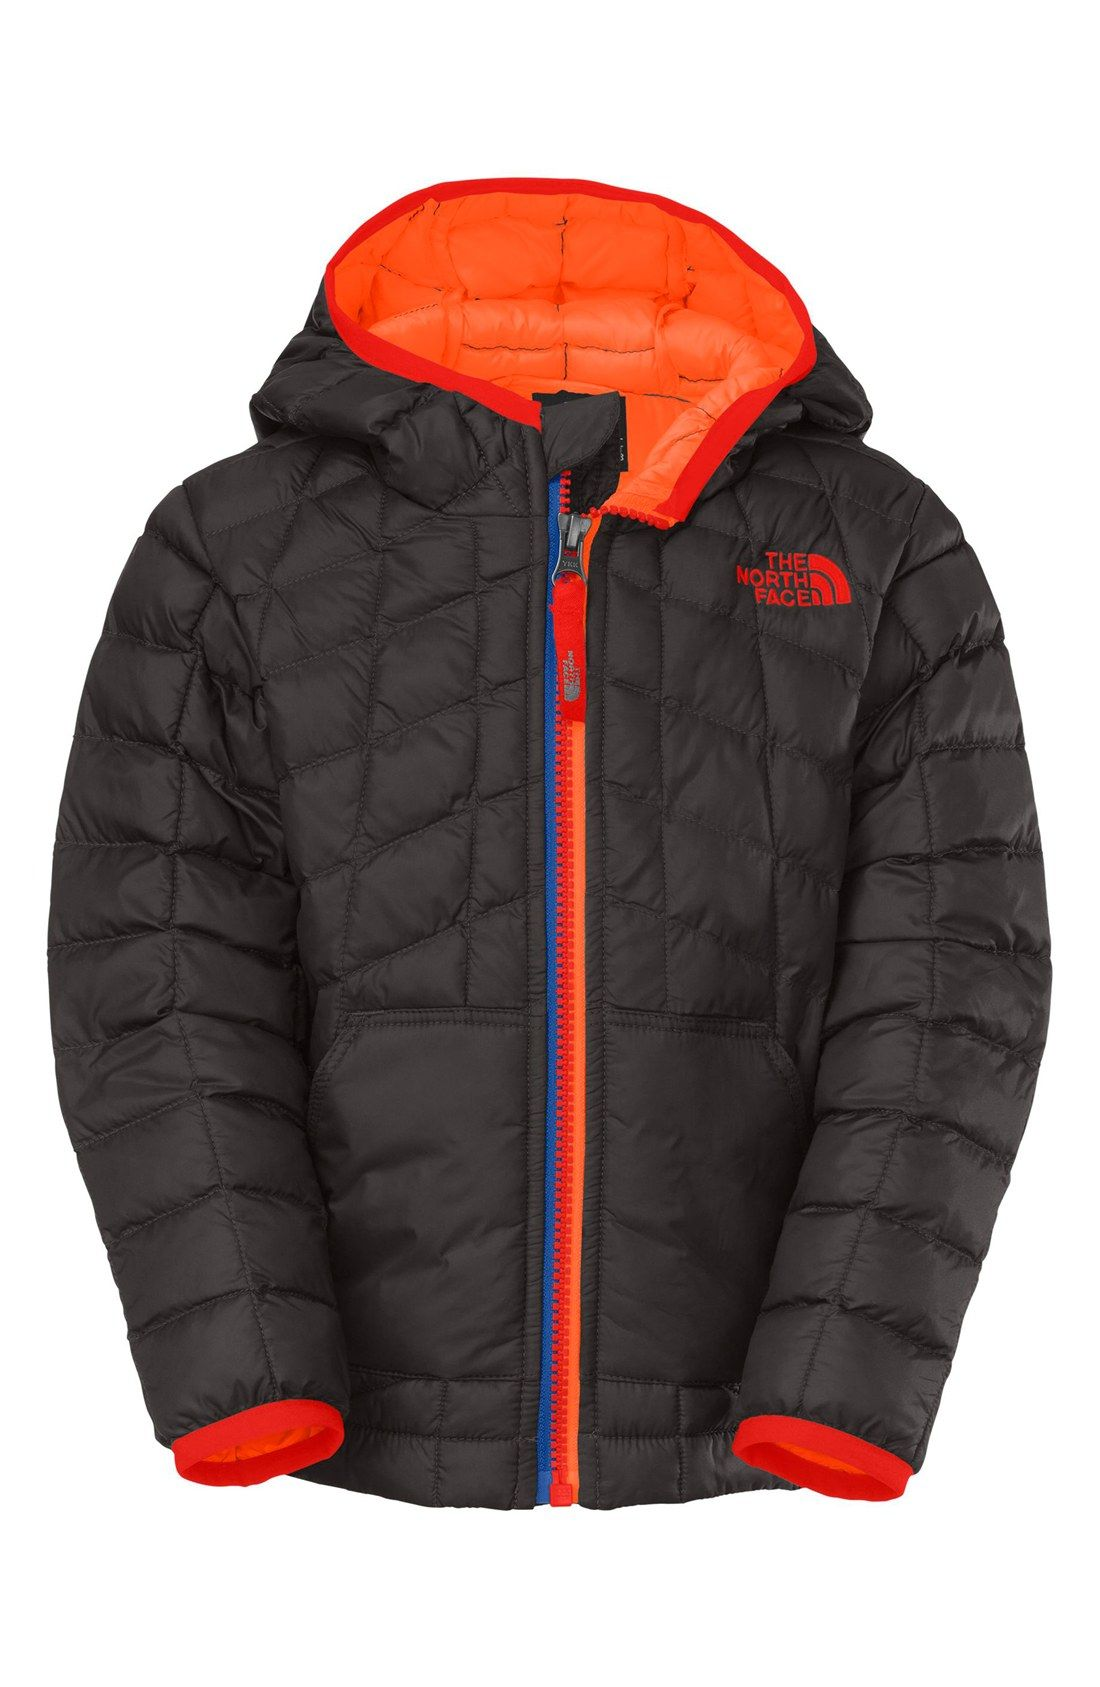 42888db36fcd Graphite Grey Size 3T - The North Face  ThermoBall™  PrimaLoft ...